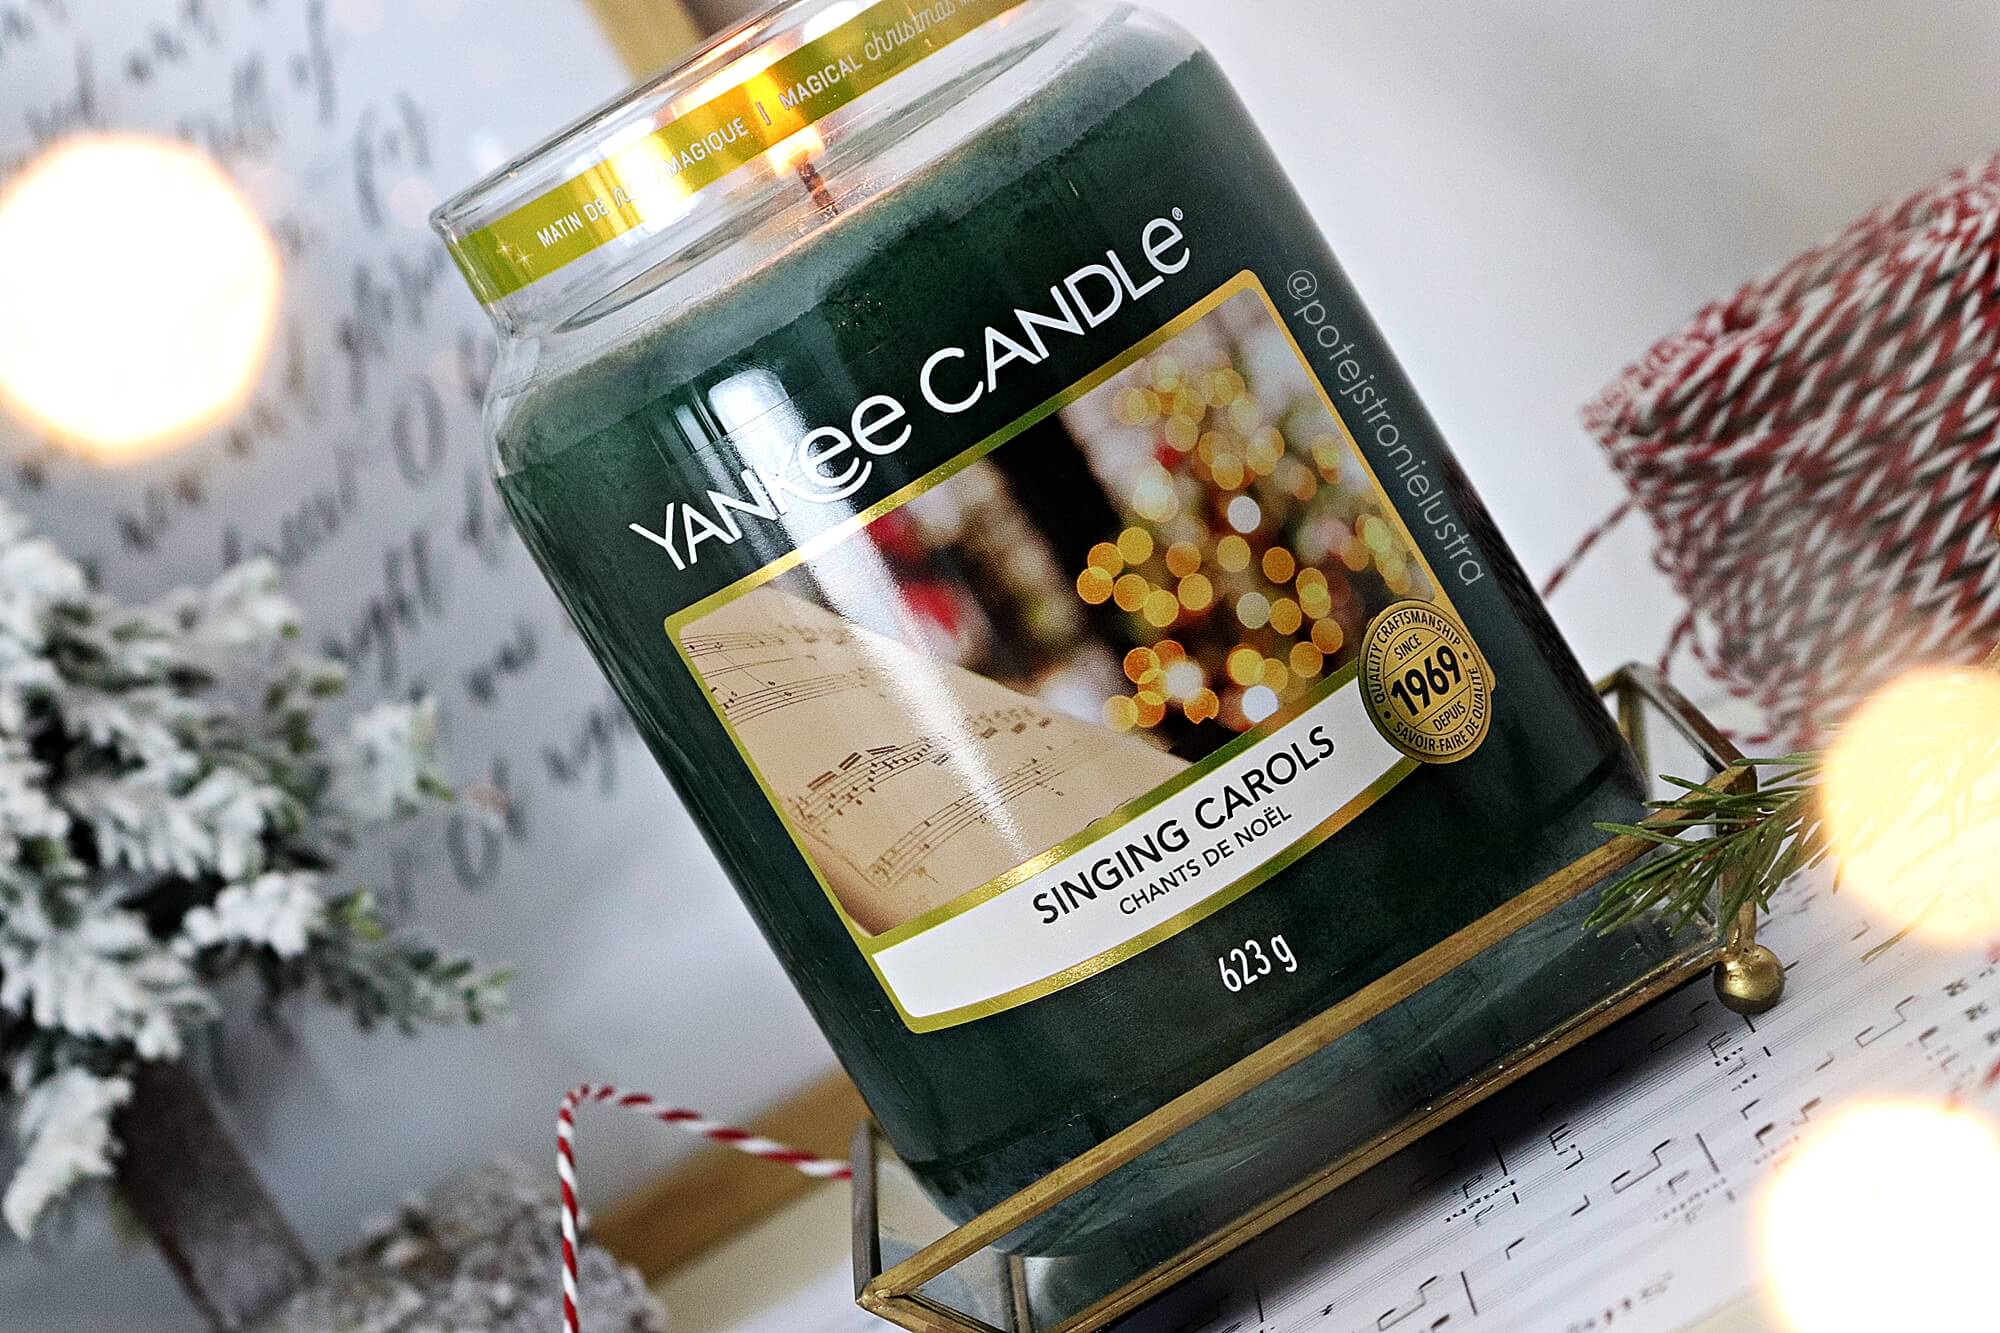 yankee candle singing carols etykieta